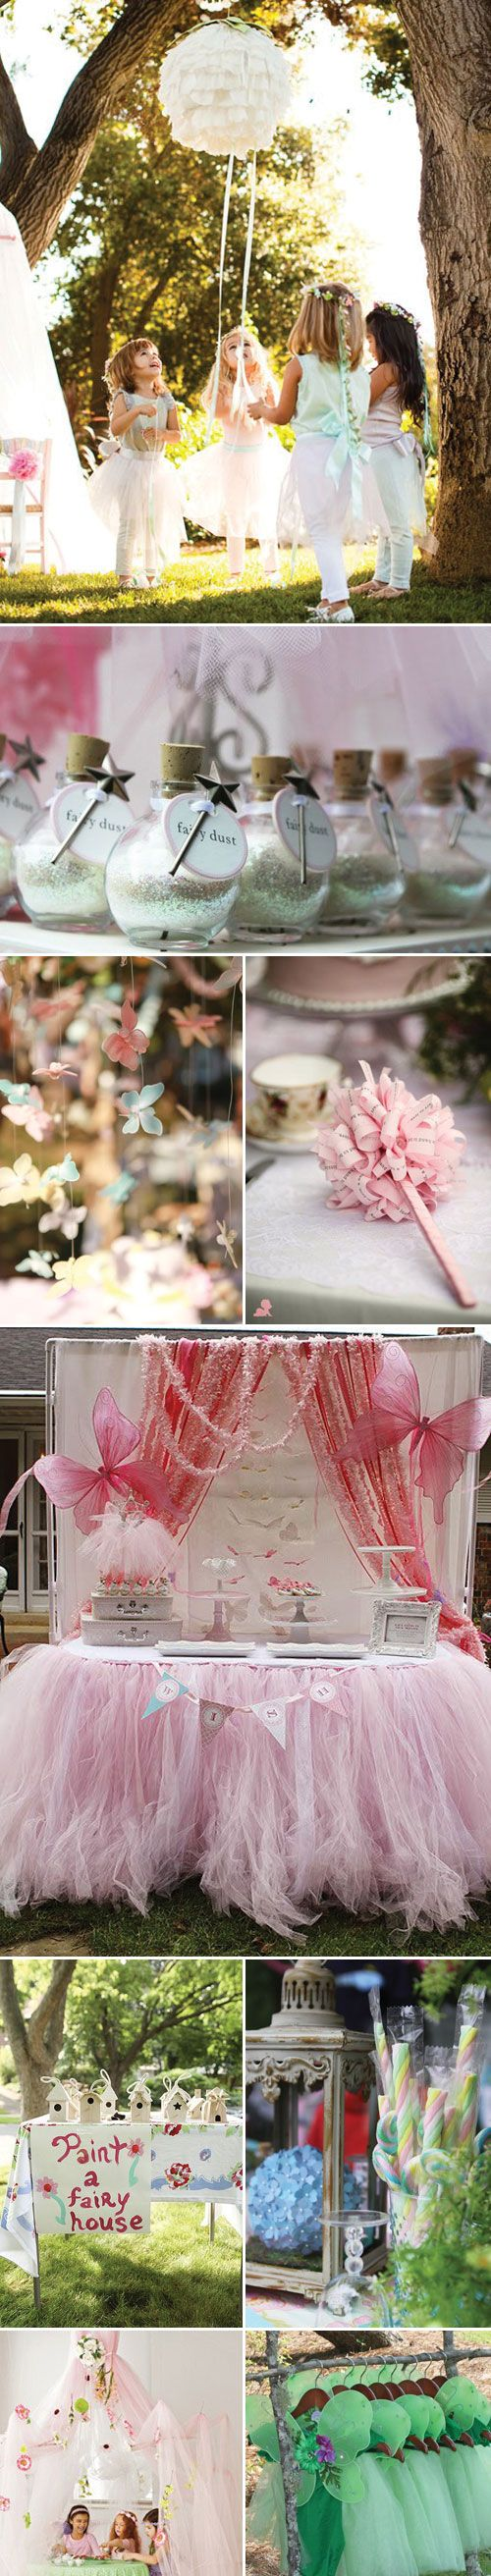 17 best images about party theme fairy garden birthday on fairy birthday party inspiration and ideas beautiful princess party the pineatta to me looks like a giant snowball ideas be for sophie later on